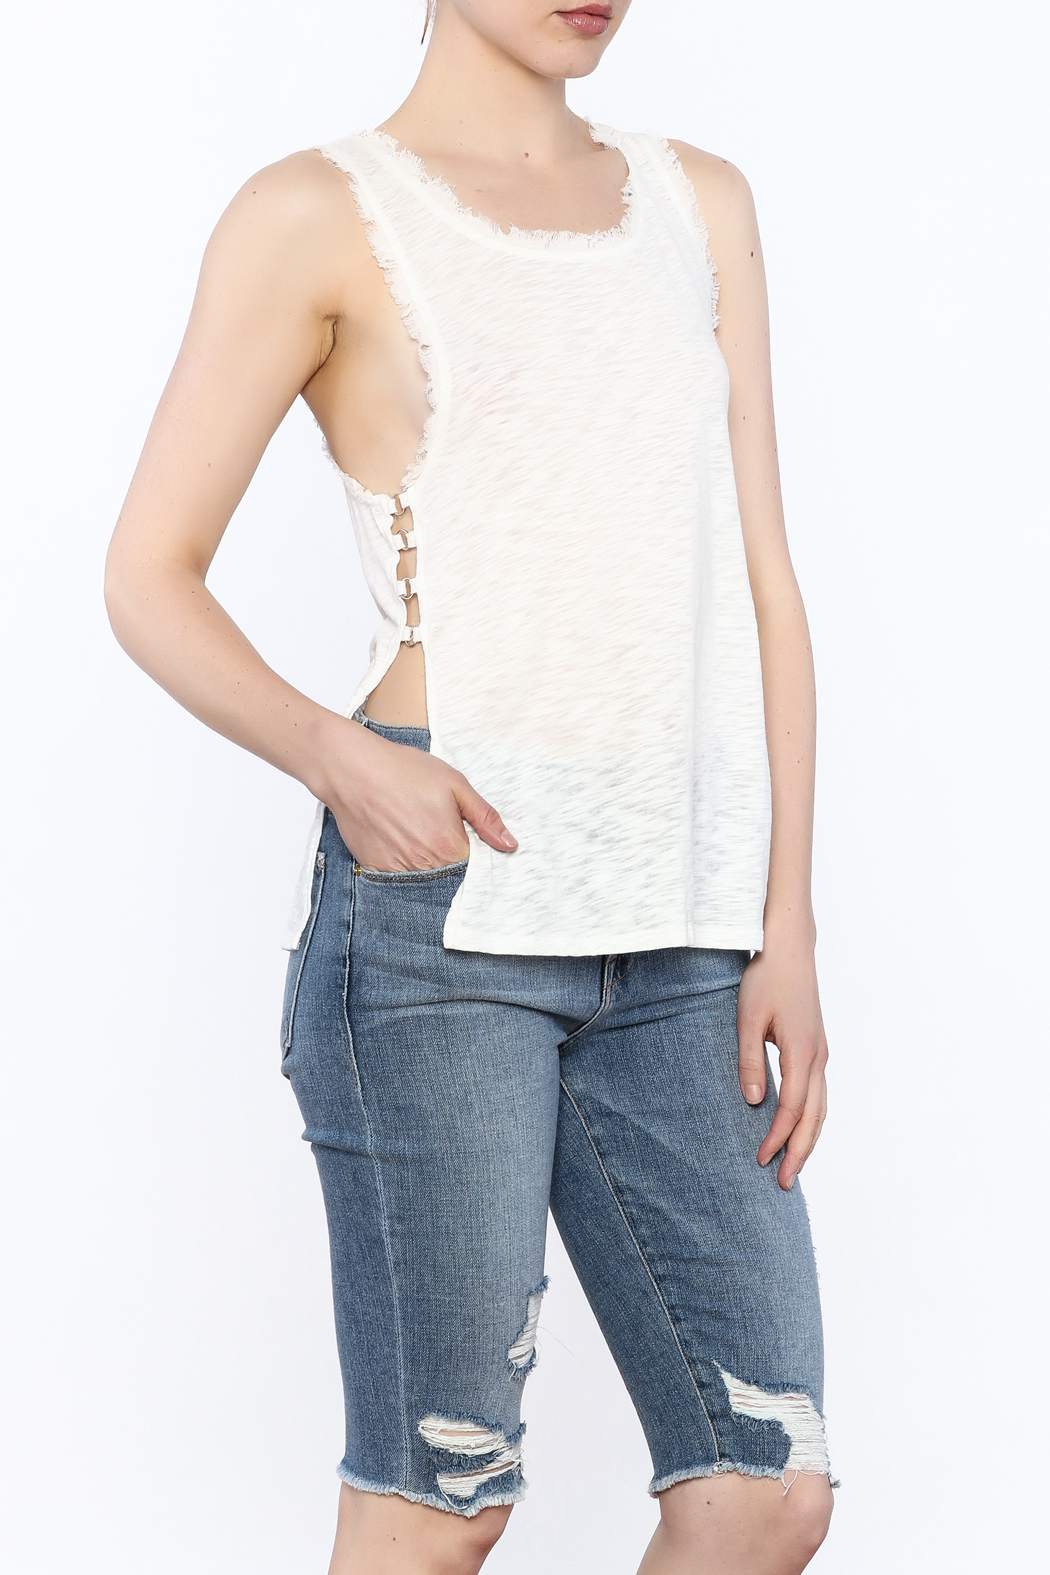 storia Frayed White Tank - Main Image